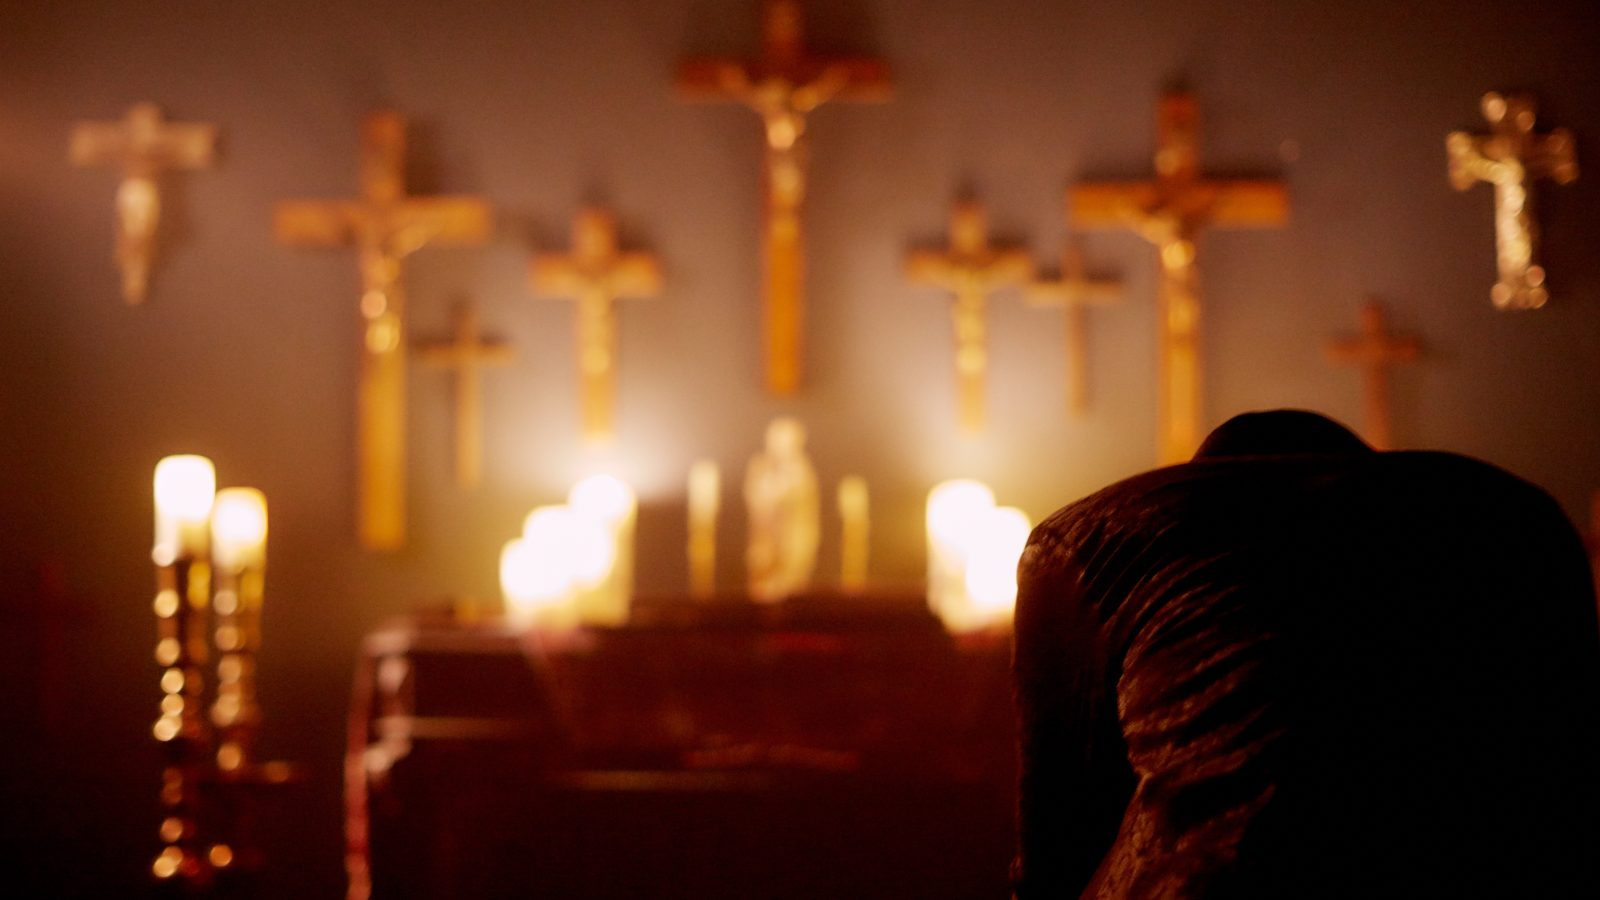 A man with his head down praying in the foreground. In the background a wall covered in crucifixes and candles underneath.